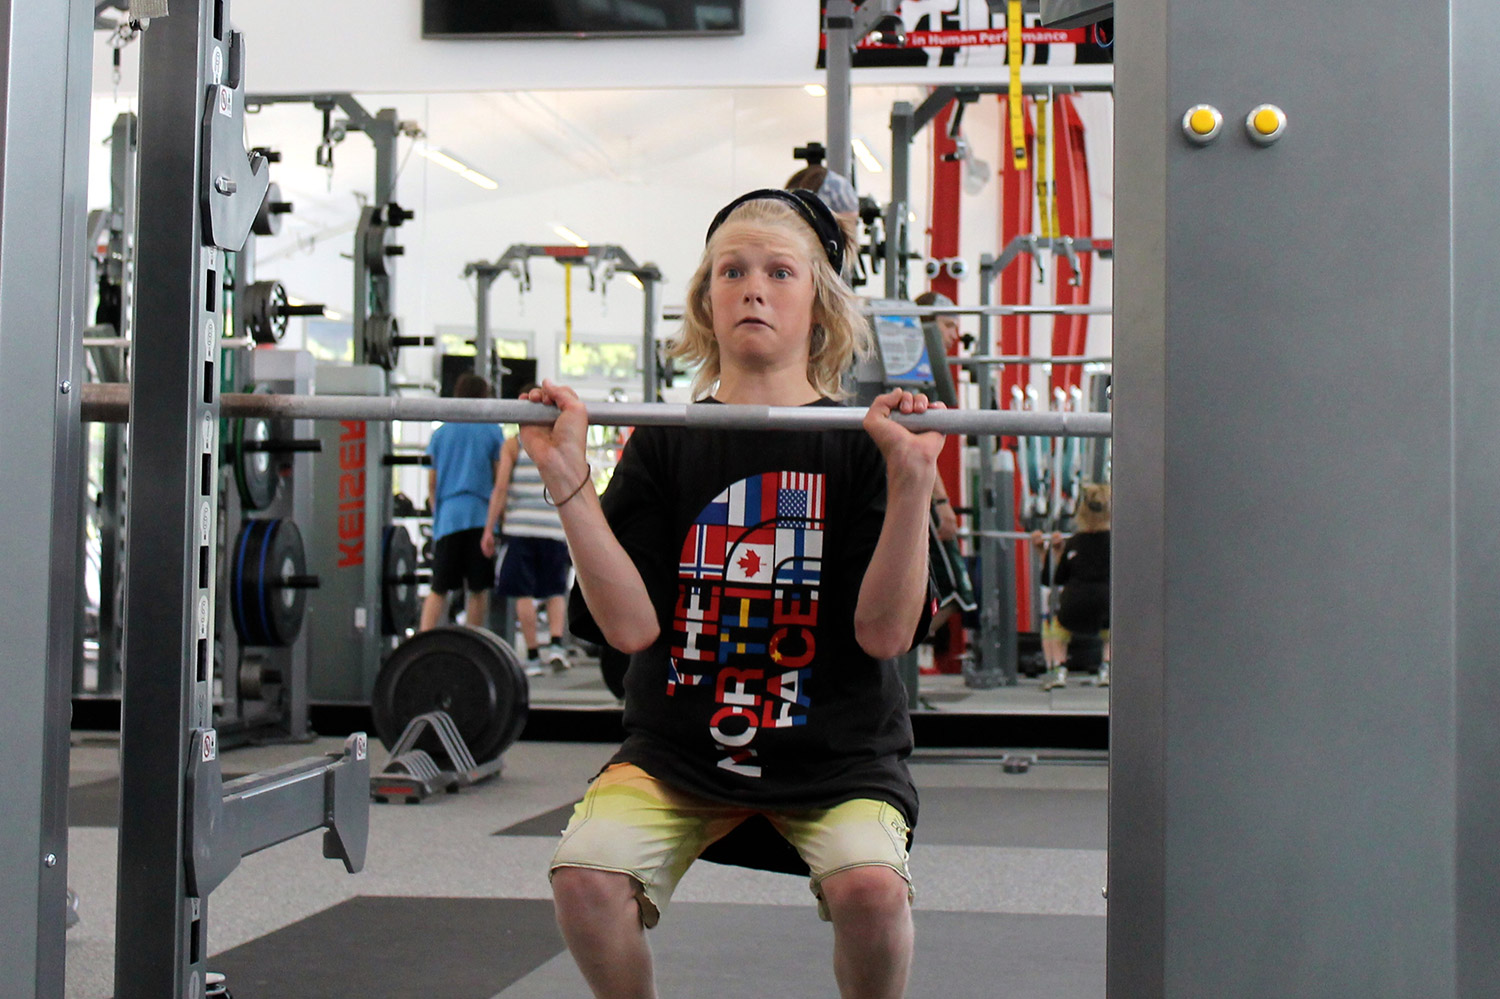 Ezra Cope, a VSSA student and SSCV mogul athlete, makes use of the new fitness center in Minturn. Geoff Mintz/SR